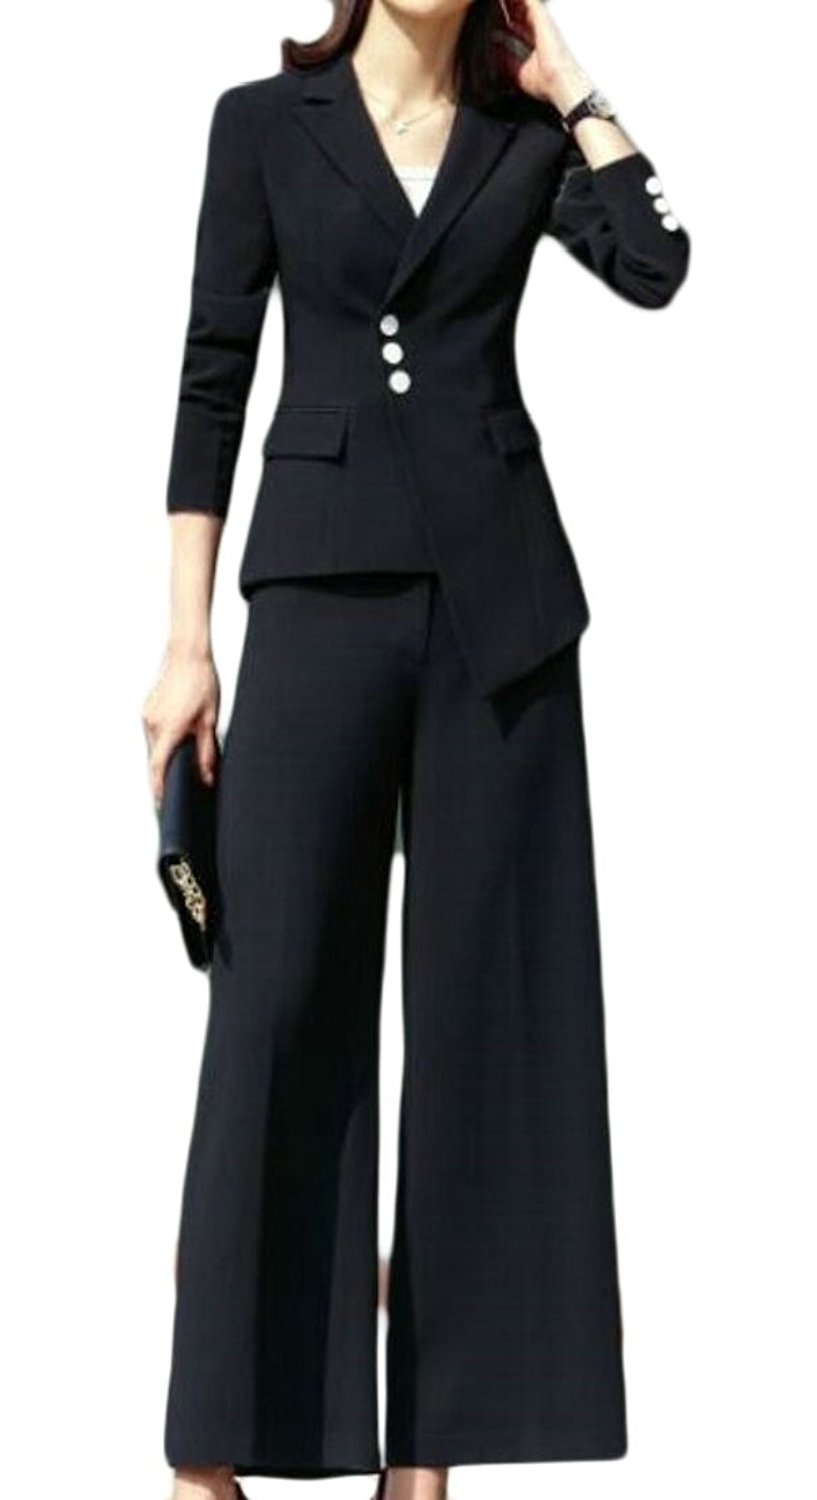 M&S&W Women's Stylish Long-Sleeved Regular Long-Sleeved Outerwear and Two-Piece Suit Jacket